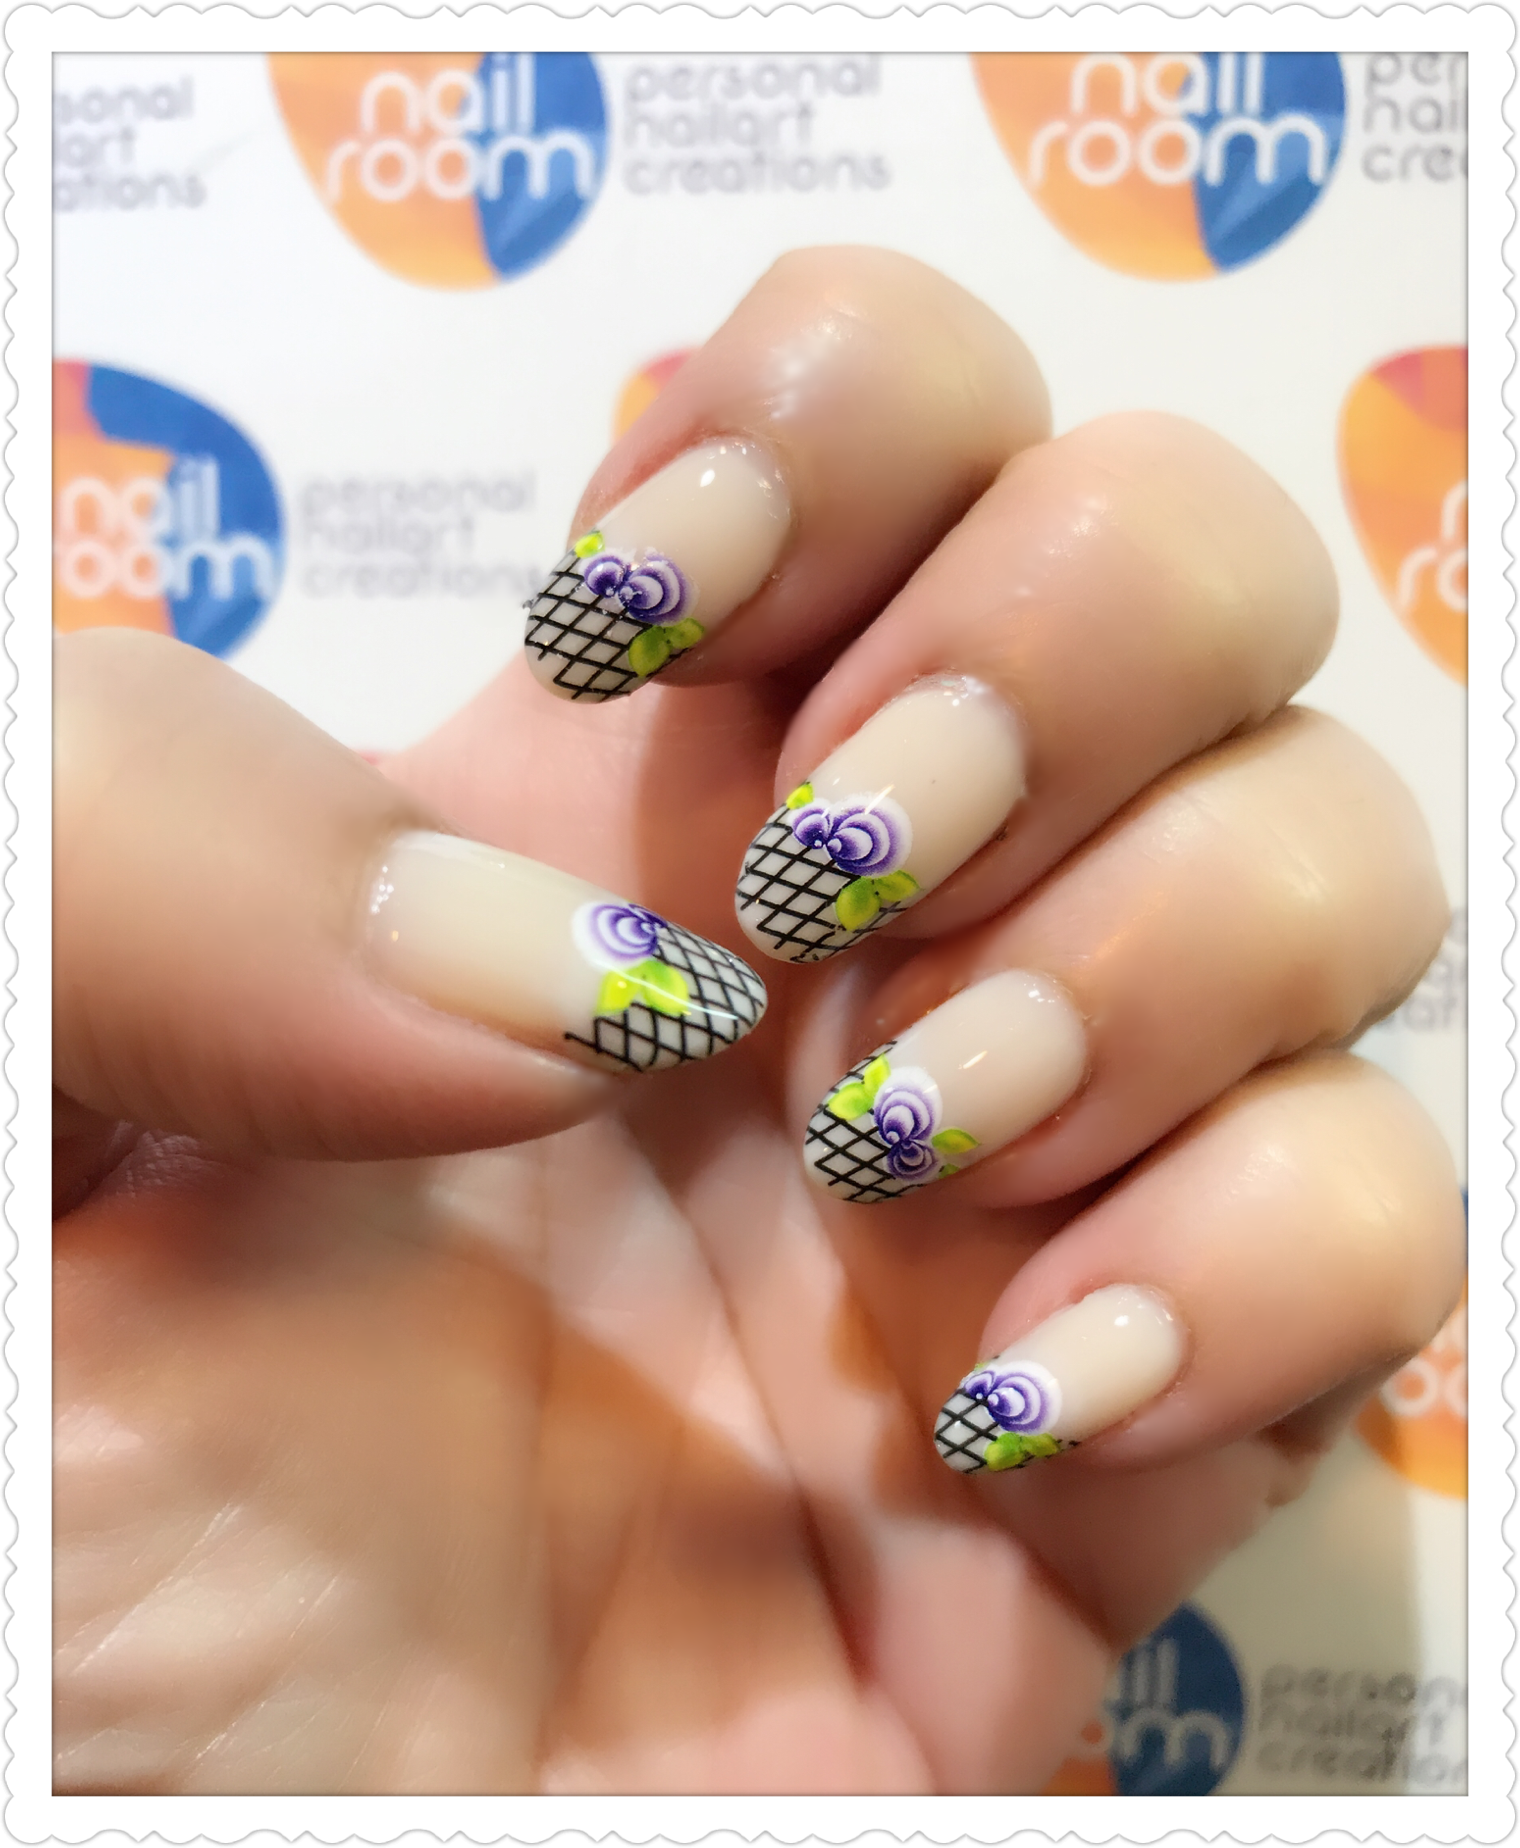 Floral french nailart using water decal transfer. Products used ...